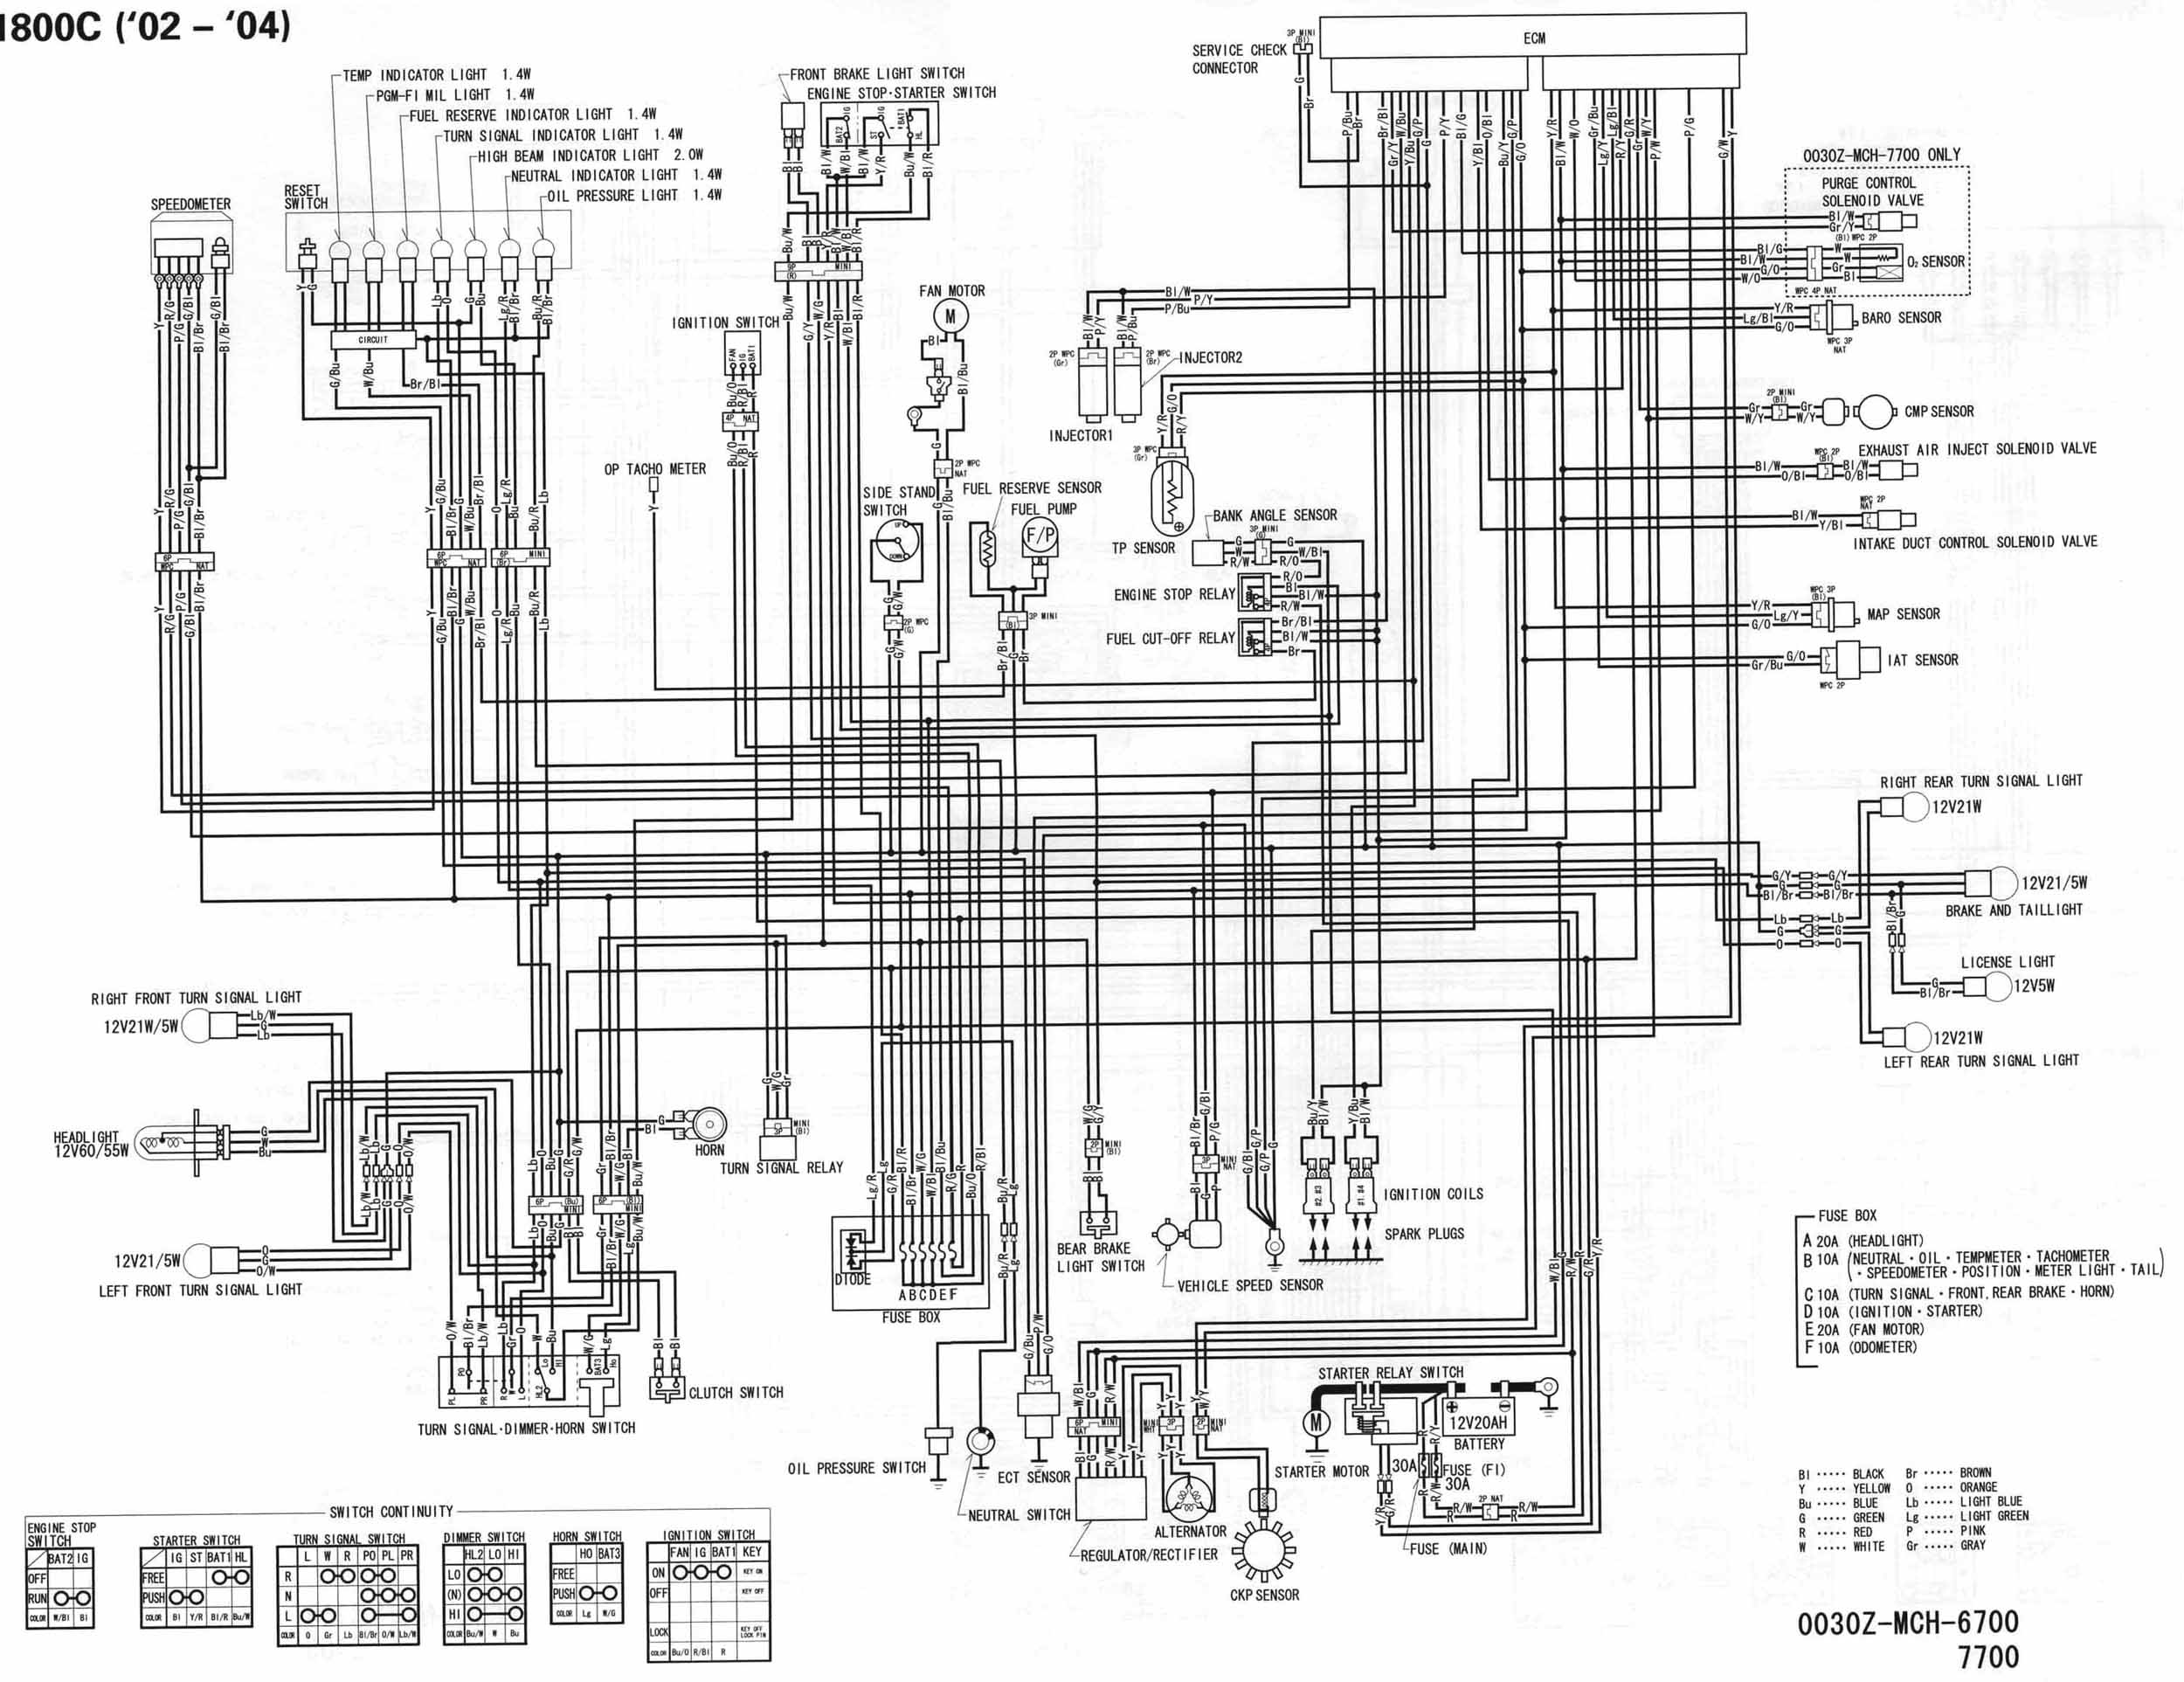 [DIAGRAM_38DE]  5570C0E 2002 Honda 500 Wiring Diagram | Wiring Library | 2007 Honda Rubicon Wiring Diagram |  | Wiring Library